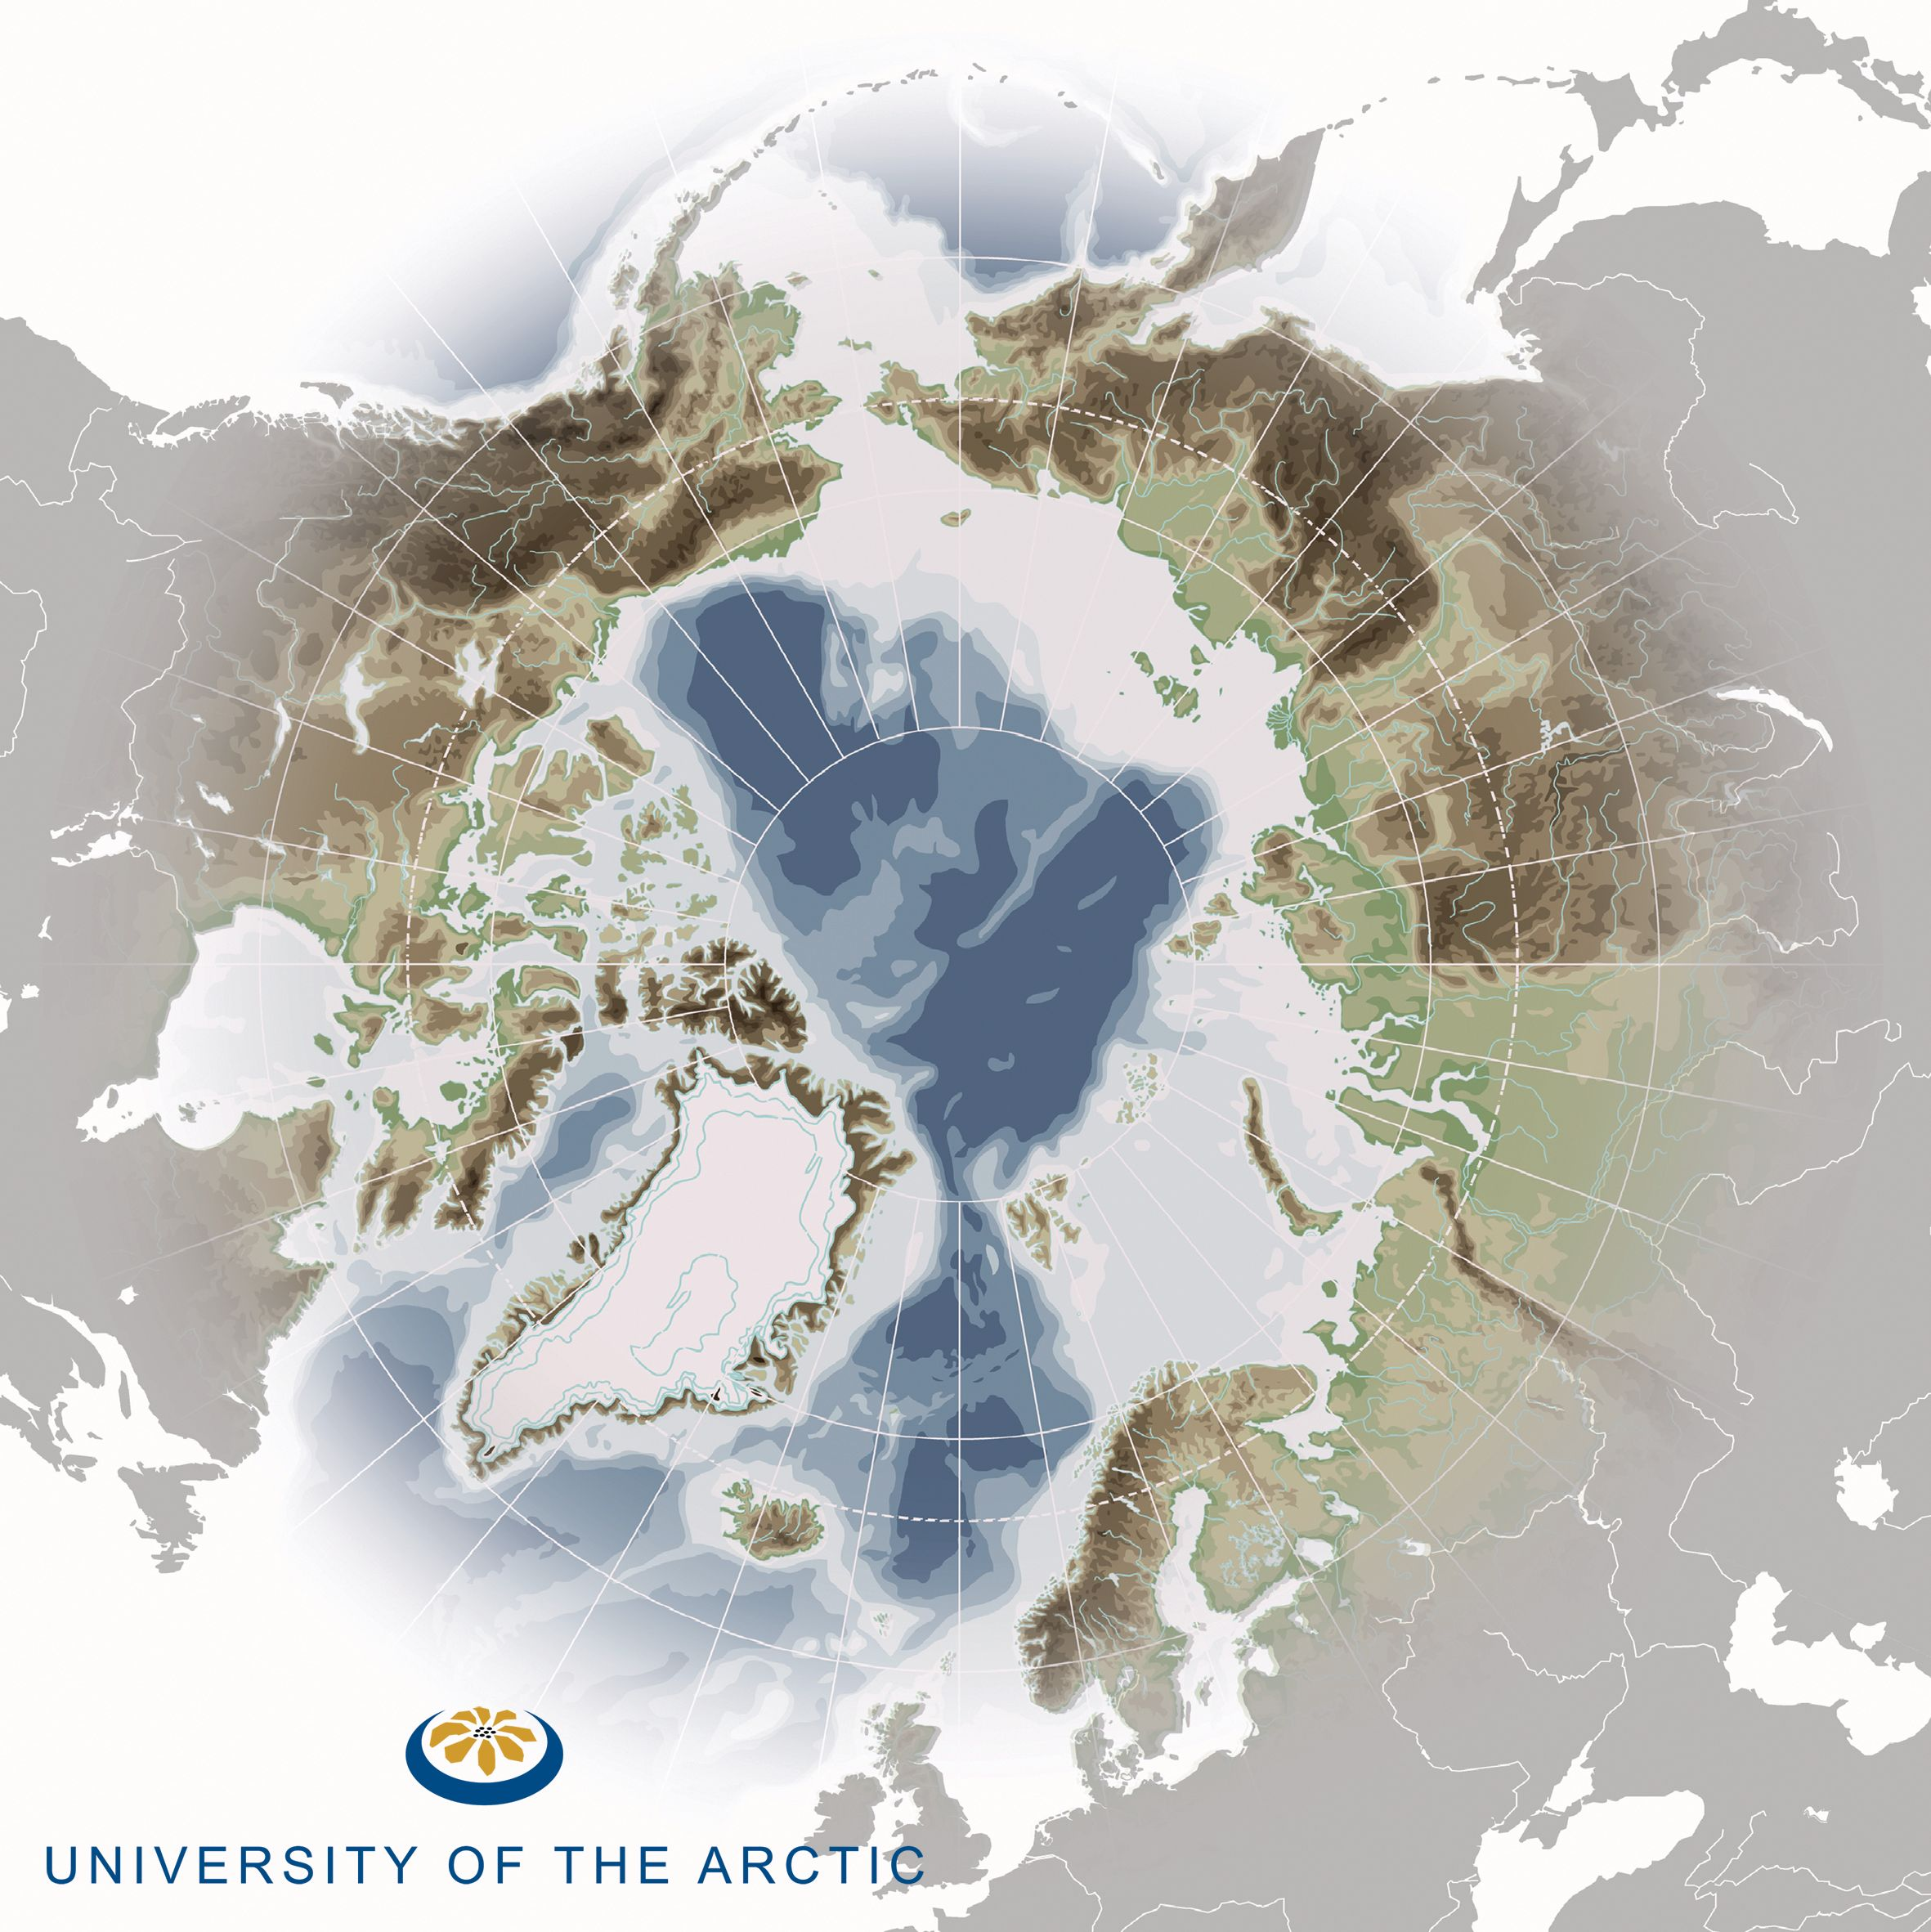 new UARCTIC MAP with logo